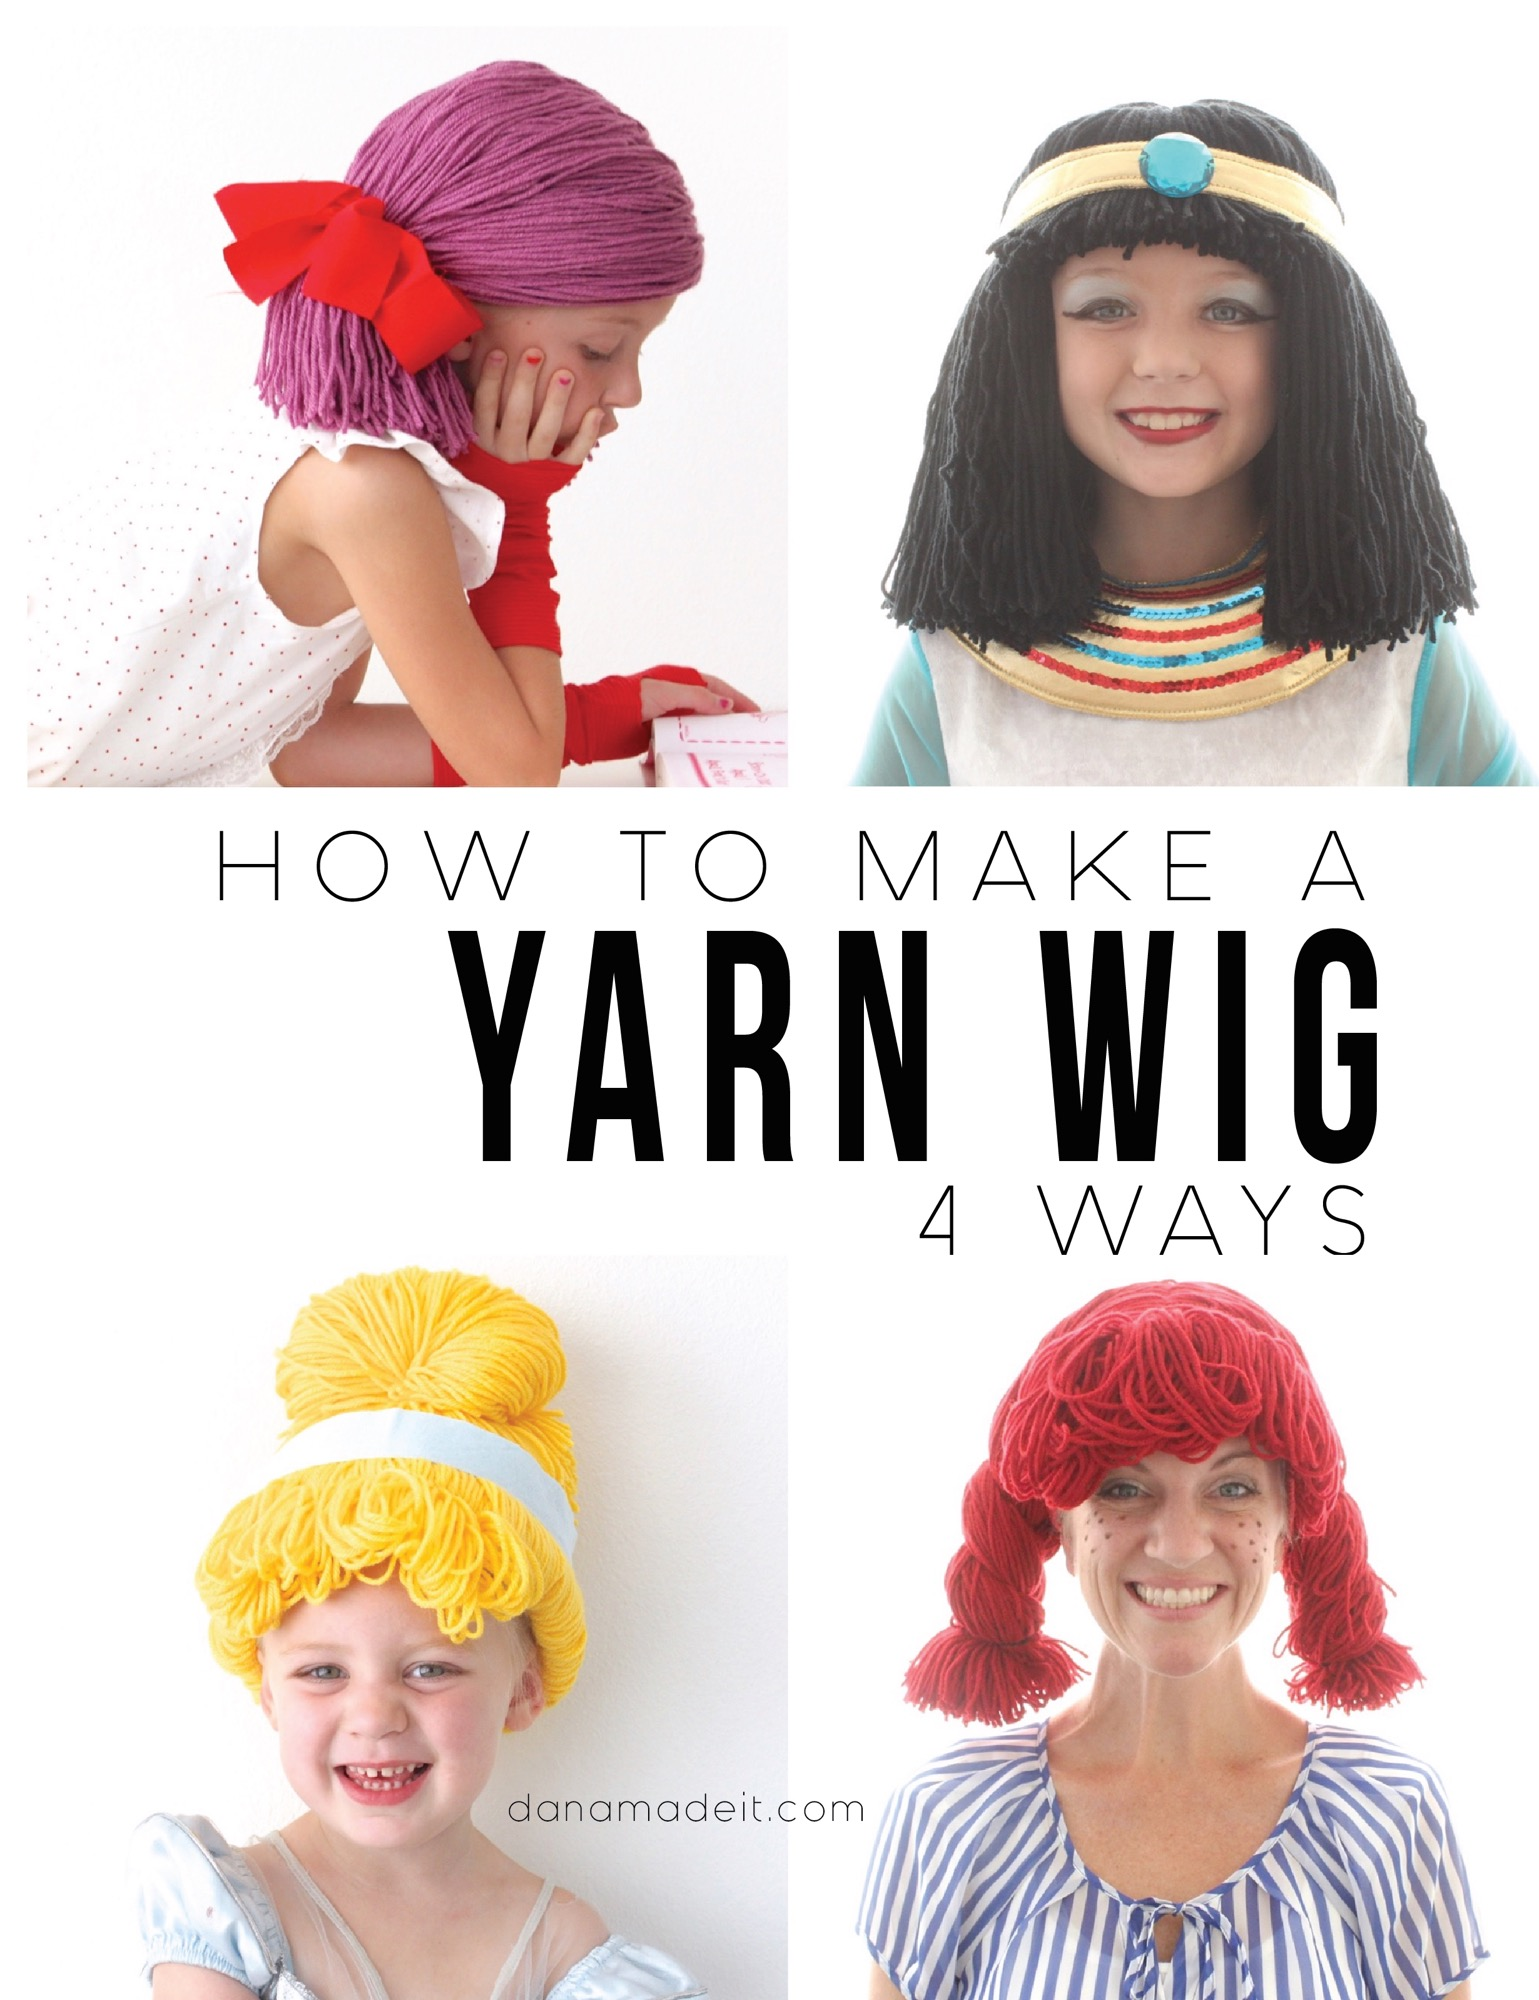 http://www.madeeveryday.com/wp-content/uploads/2015/10/How-to-make-a-Yarn-Wig-FOUR-ways-on-MADE1.jpg